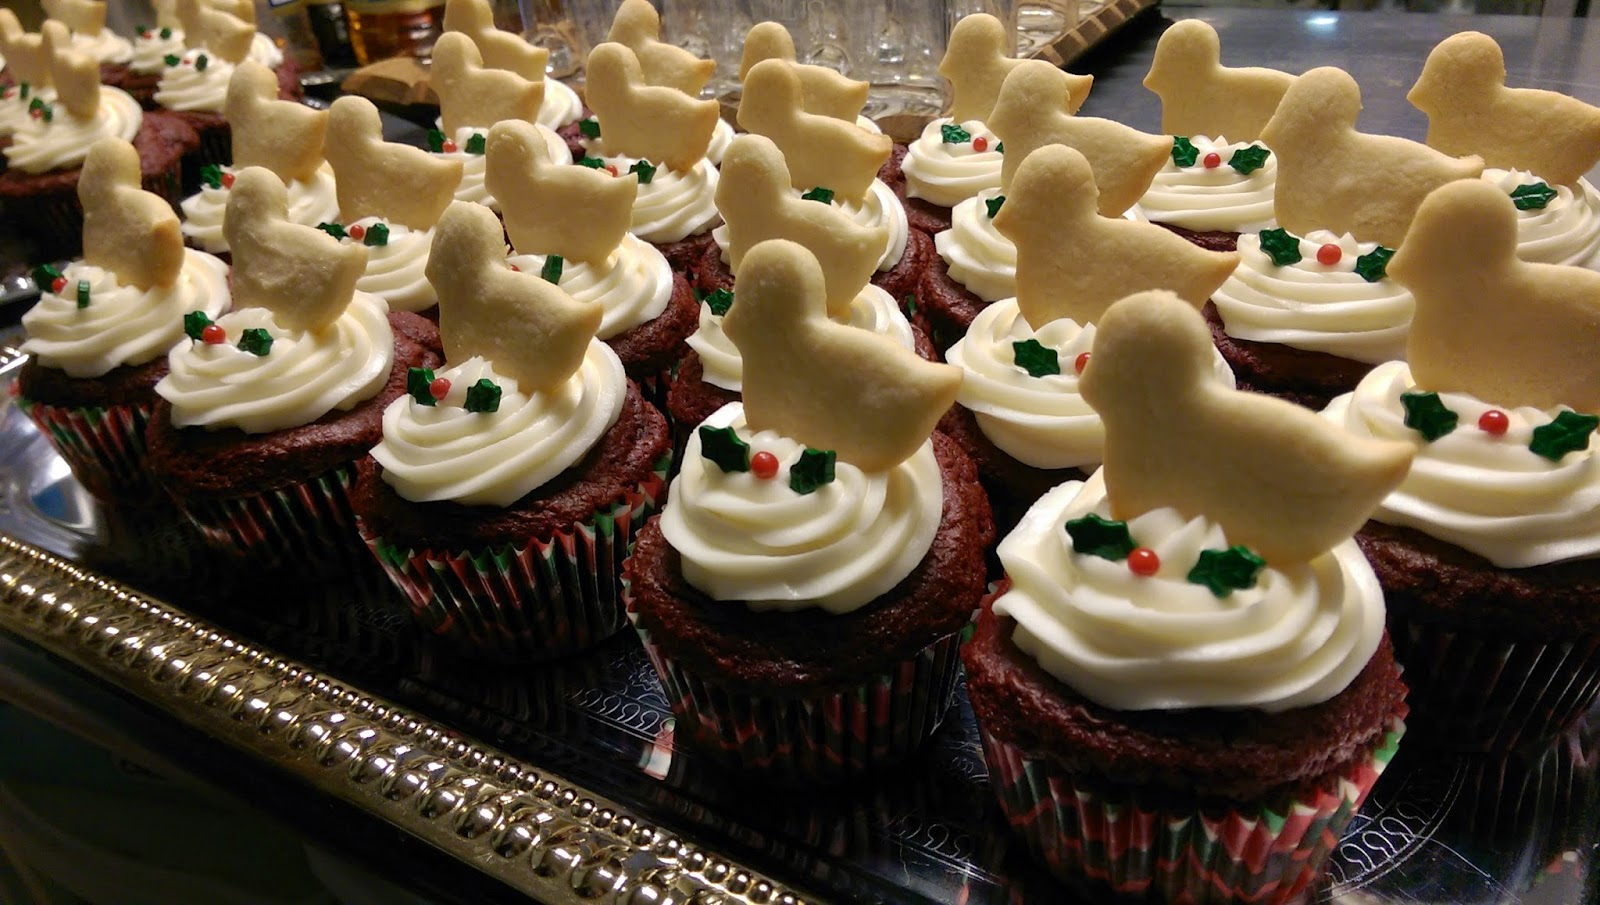 12 Desserts of Christmas: Calling Bird Cupcakes 3 4%2Bcalling%2Bbirds%2Bcupcakes St. Francis Inn St. Augustine Bed and Breakfast